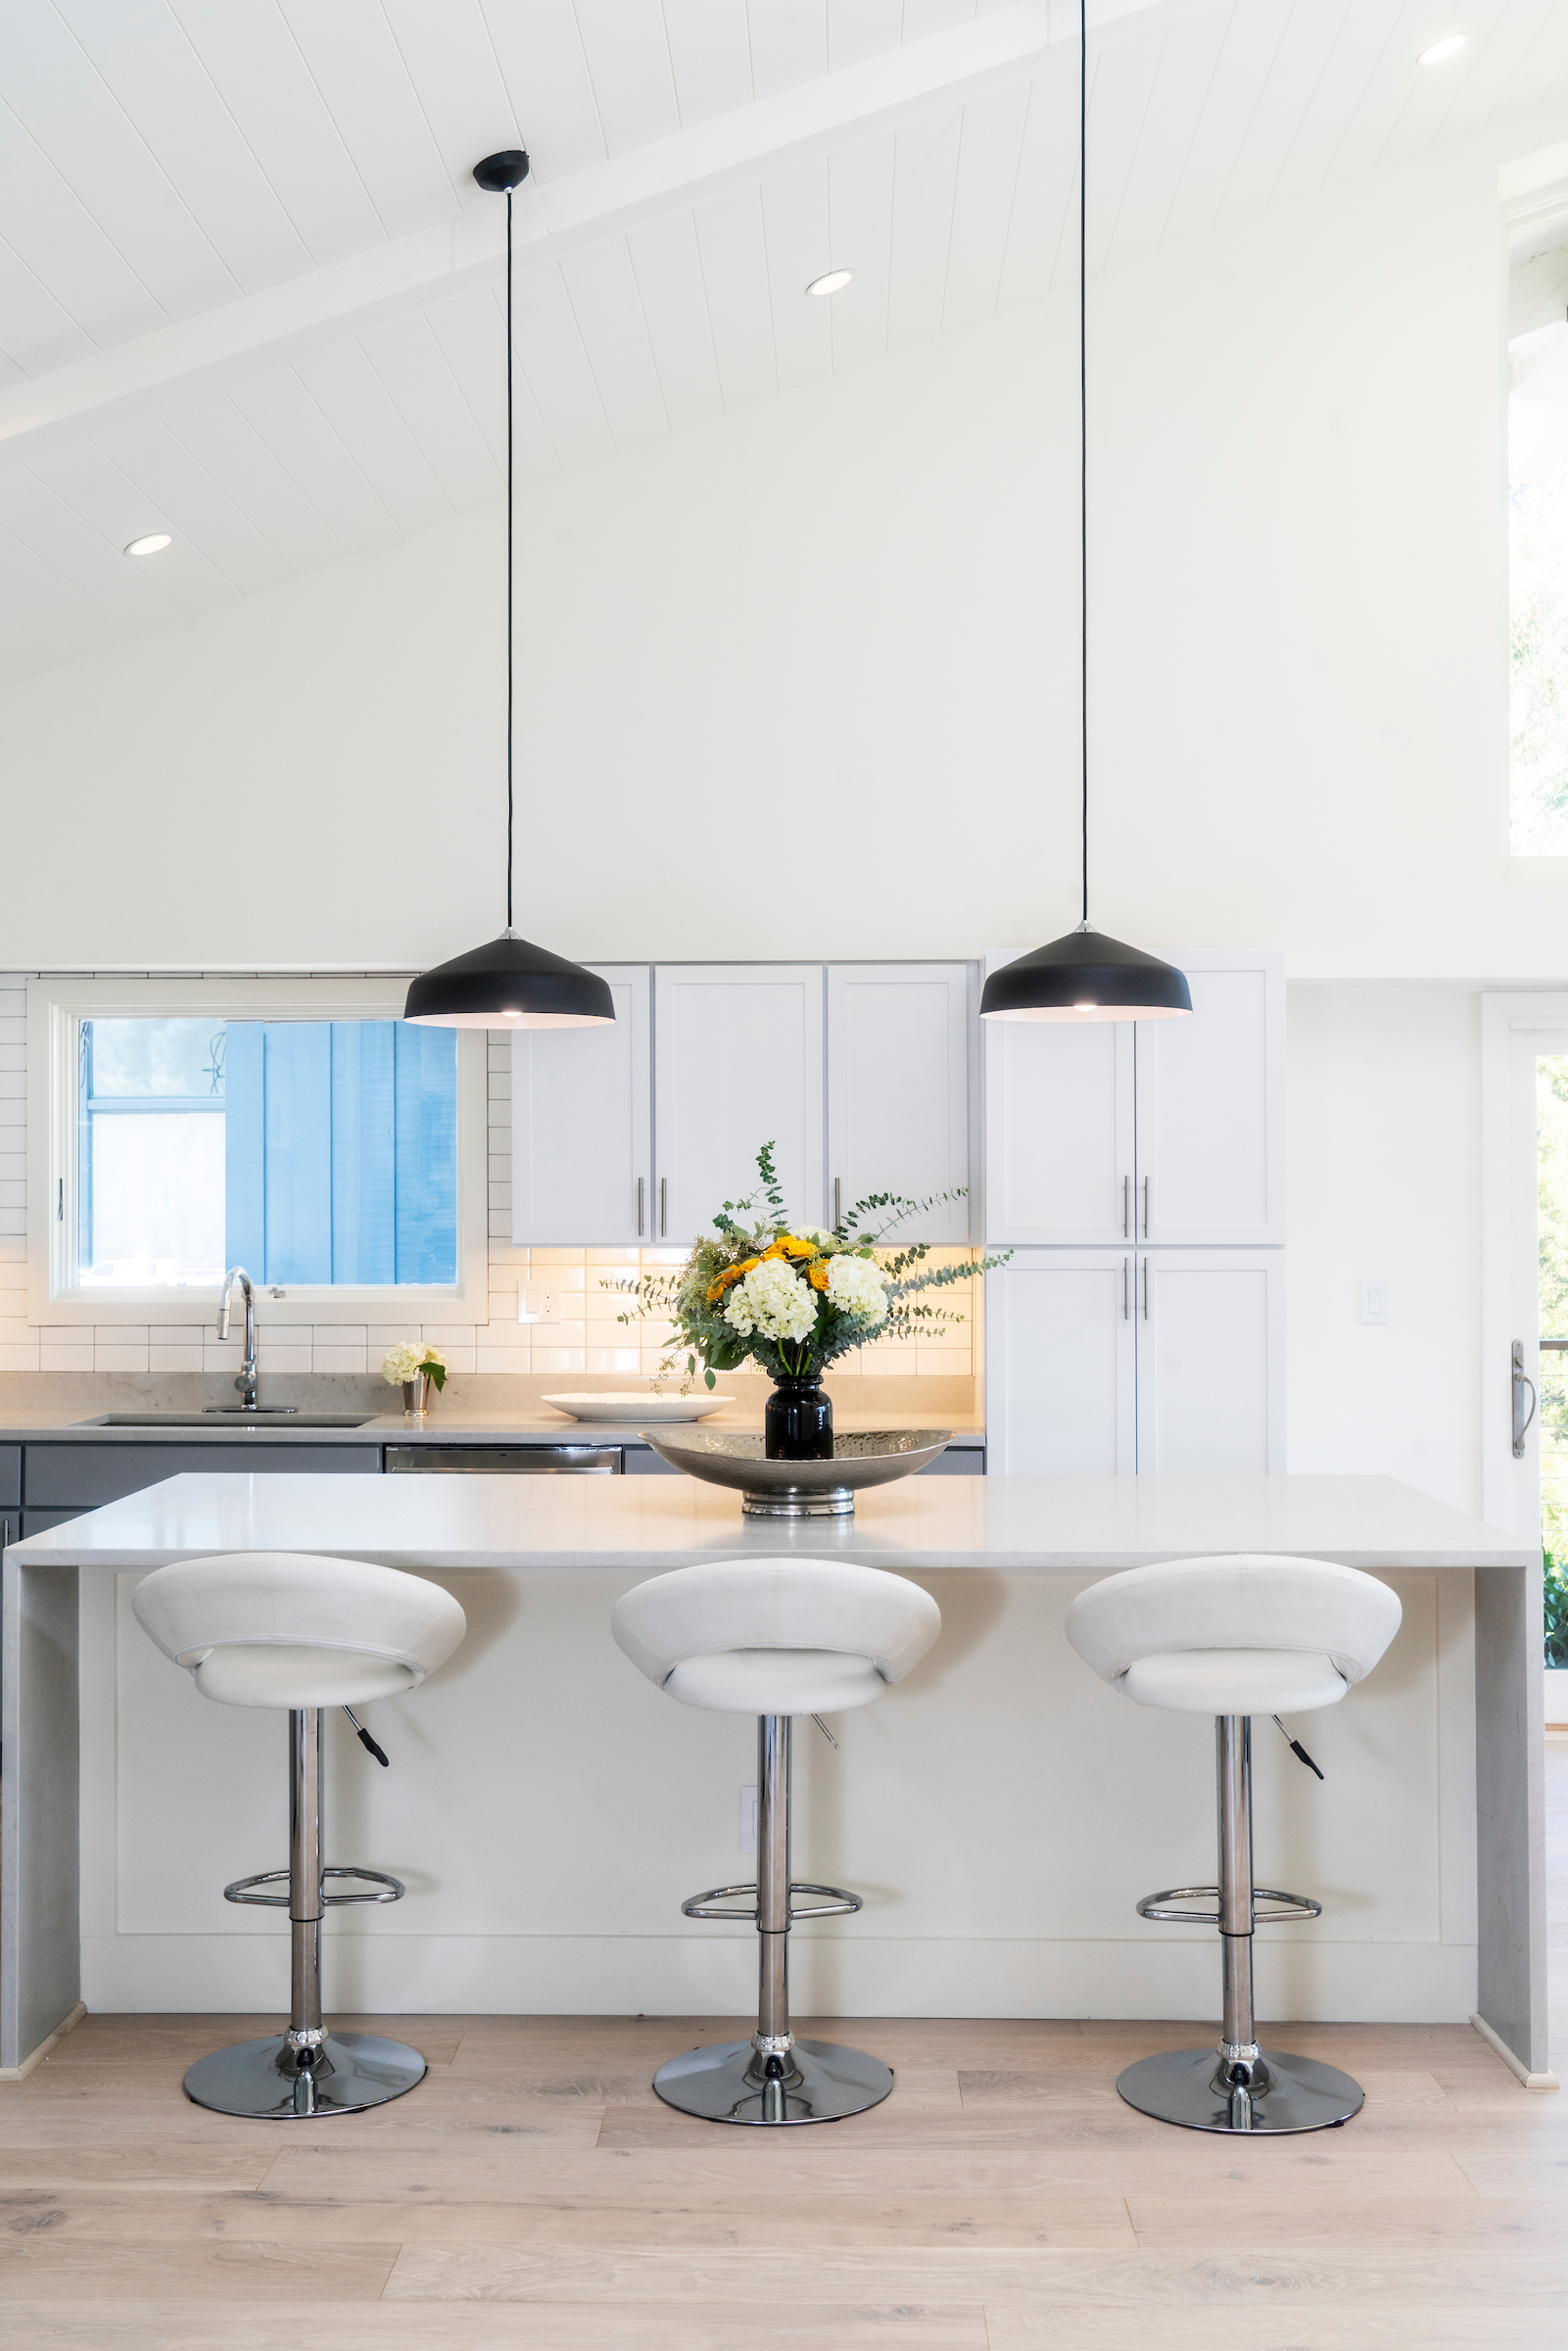 The open layout, modern finishes, and luxurious touches in the kitchens at The Pointe at Cove include Waterworks fixtures, European oak flooring and high-end stainless steel appliances, such as gas range, dishwasher, microwave and wine fridge.